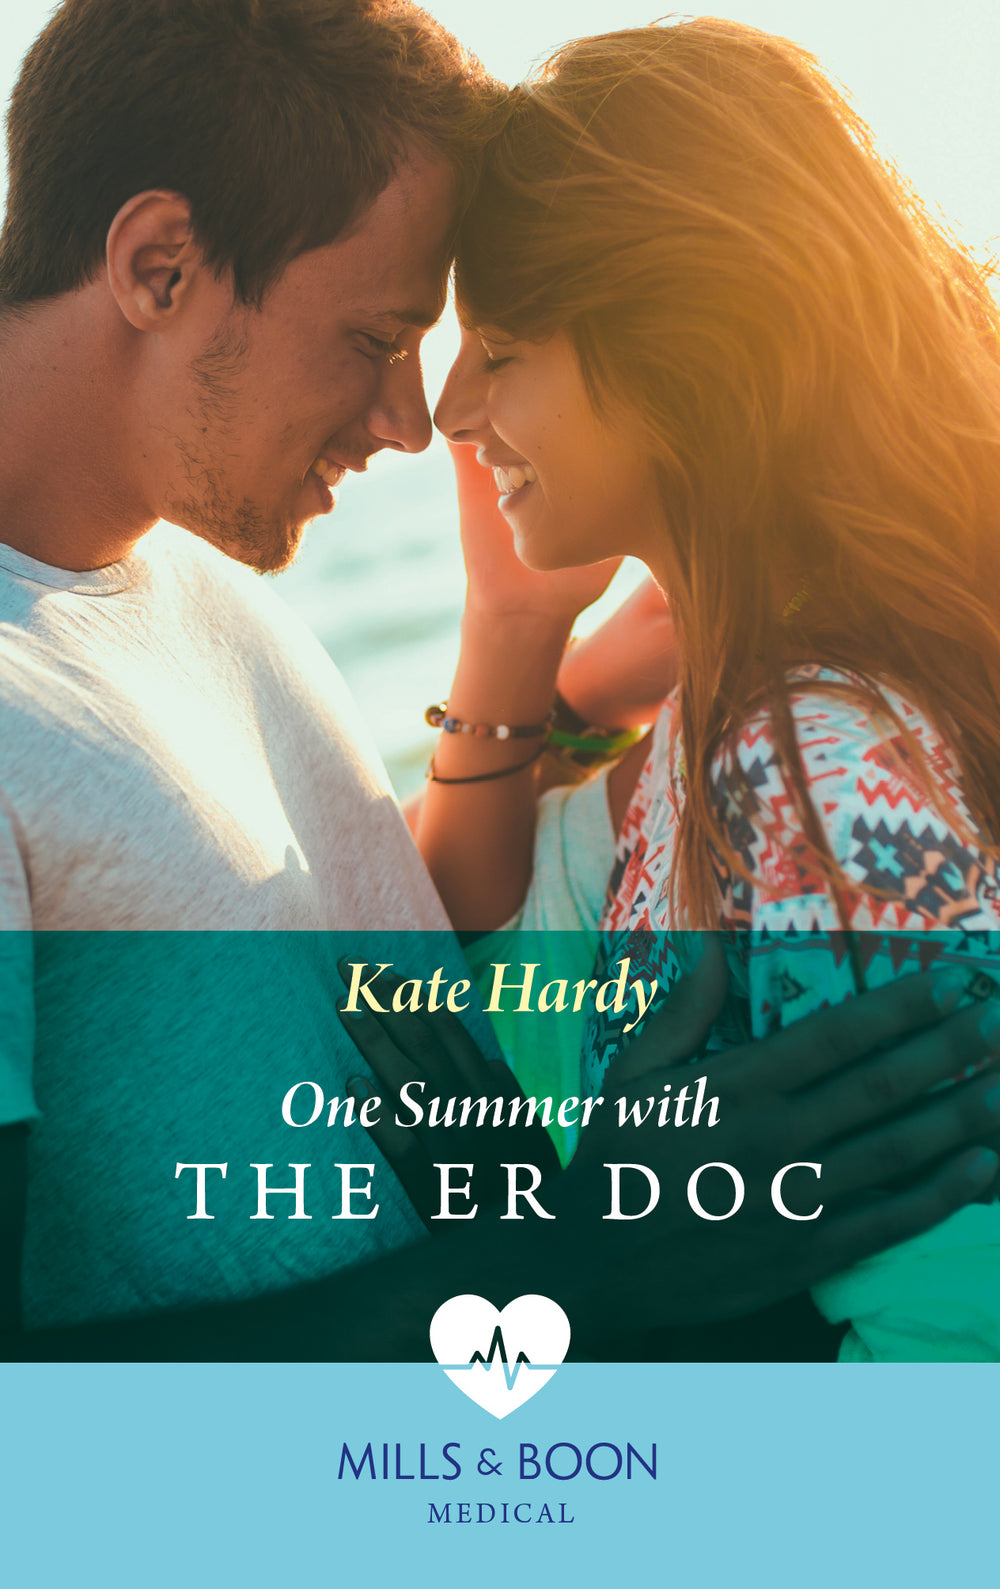 One Summer with the ER Doc - Chapter 2